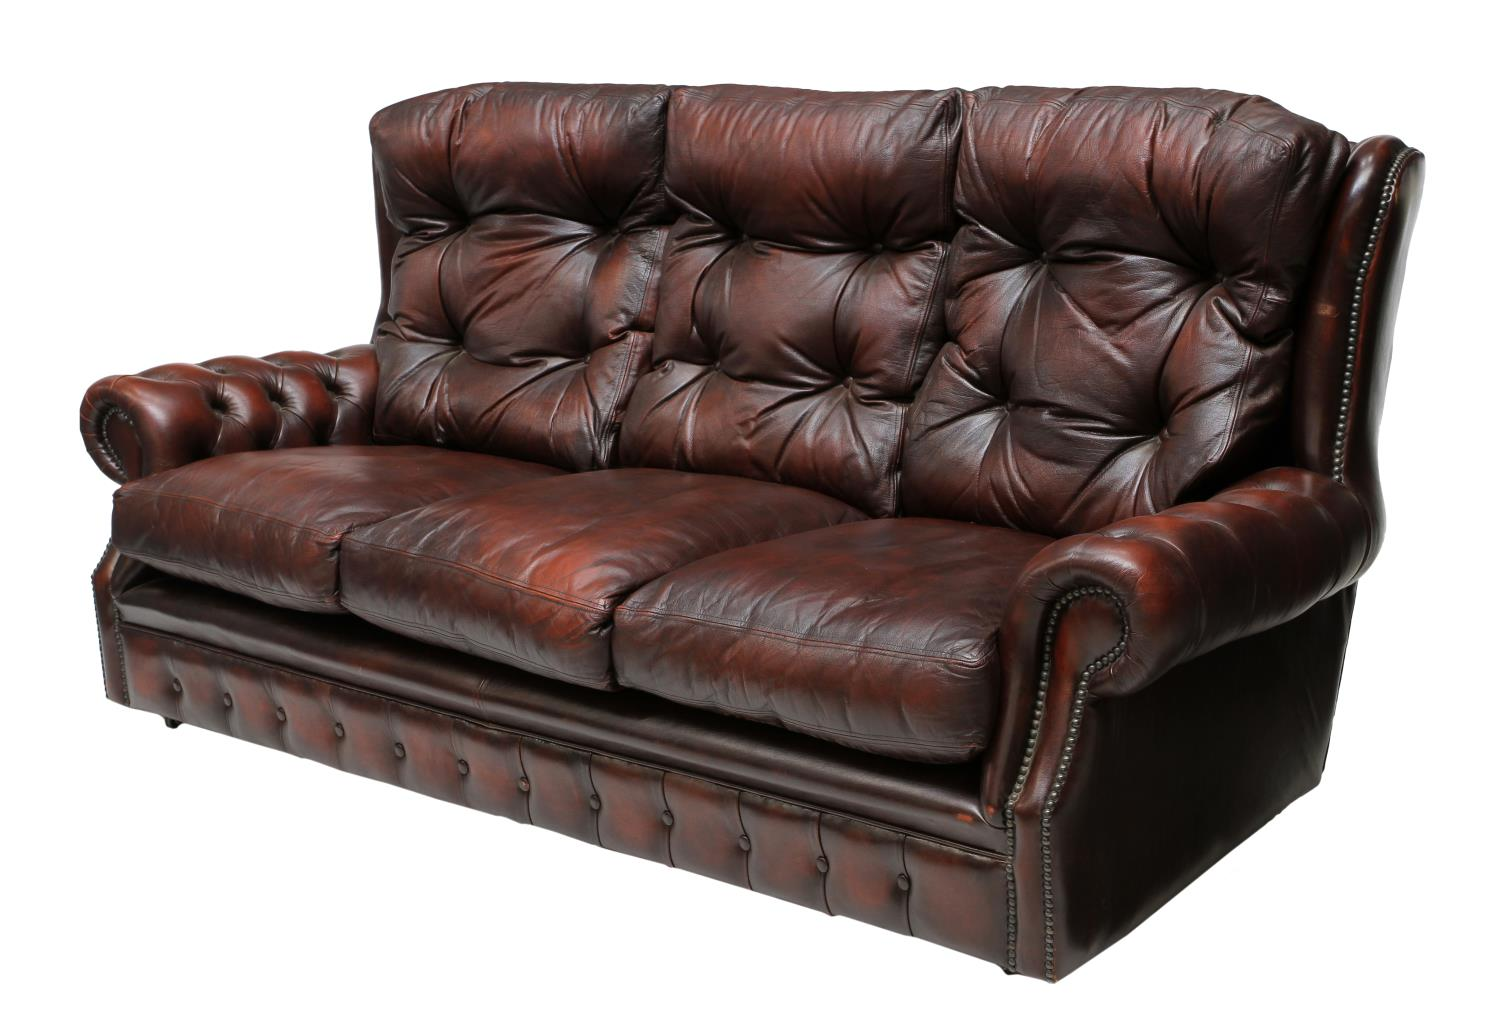 Chesterfield Oxblood Red Leather Tufted Sofa Fantastic